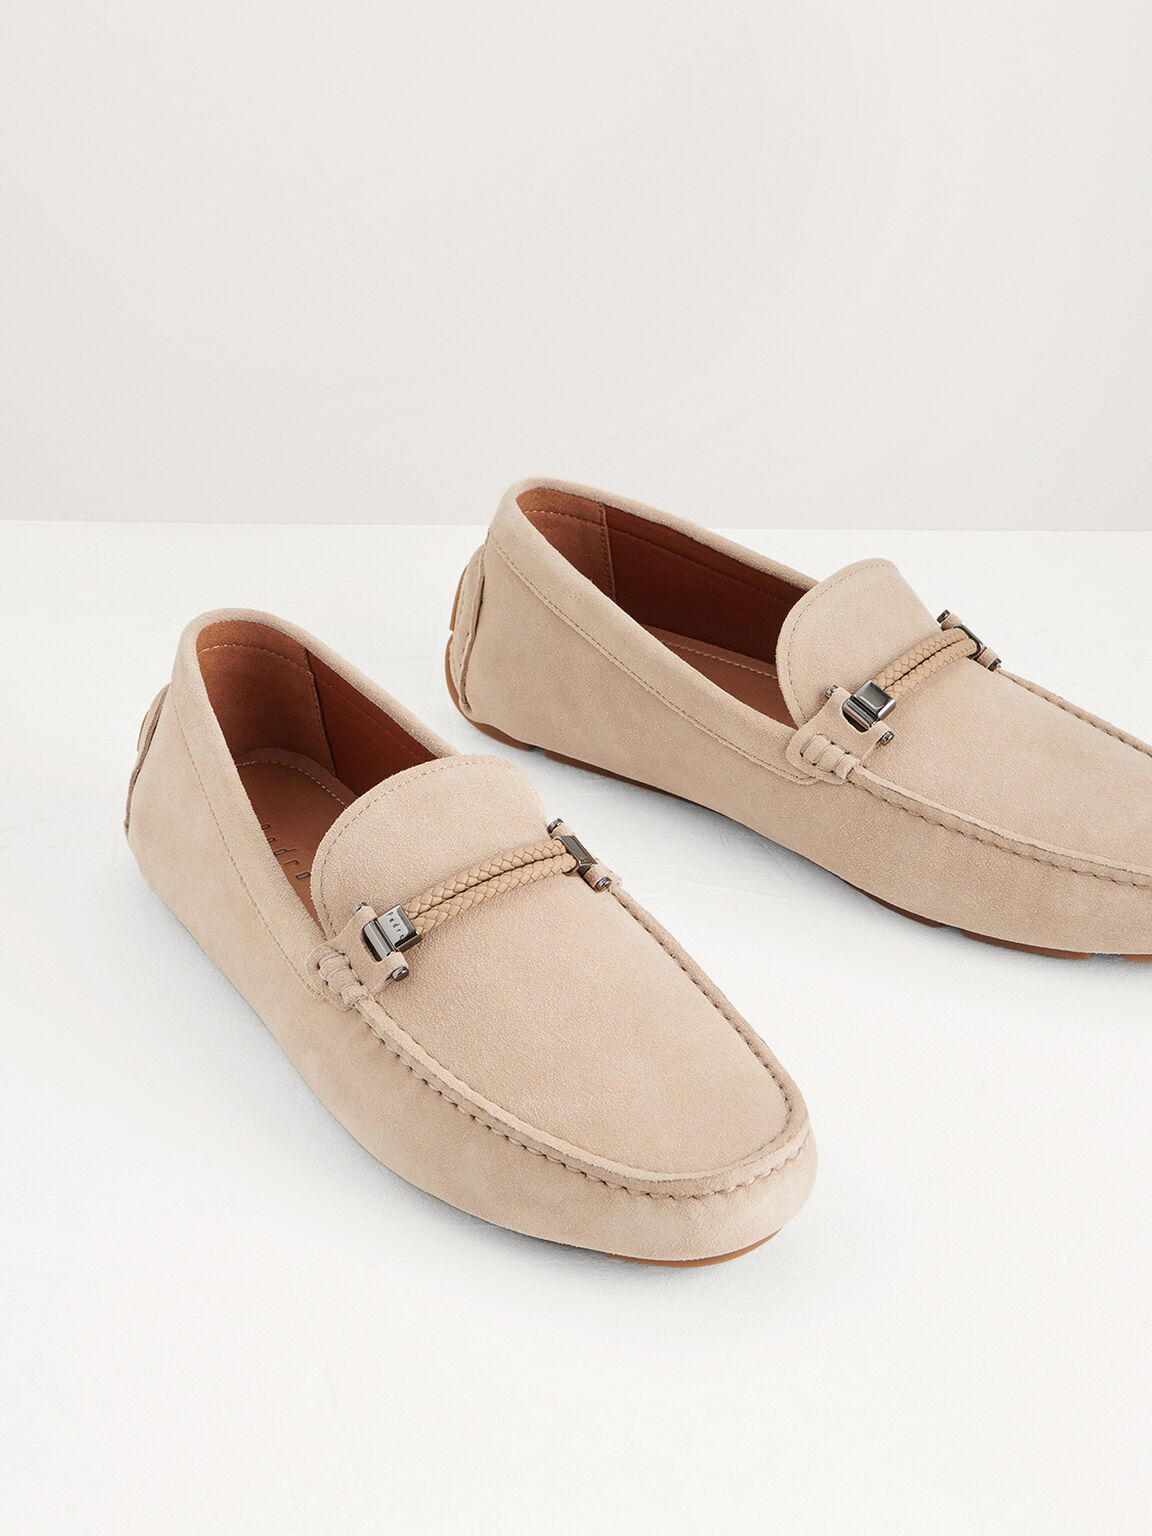 Bit Suede Moccasins with Braided Detail, Sand, hi-res